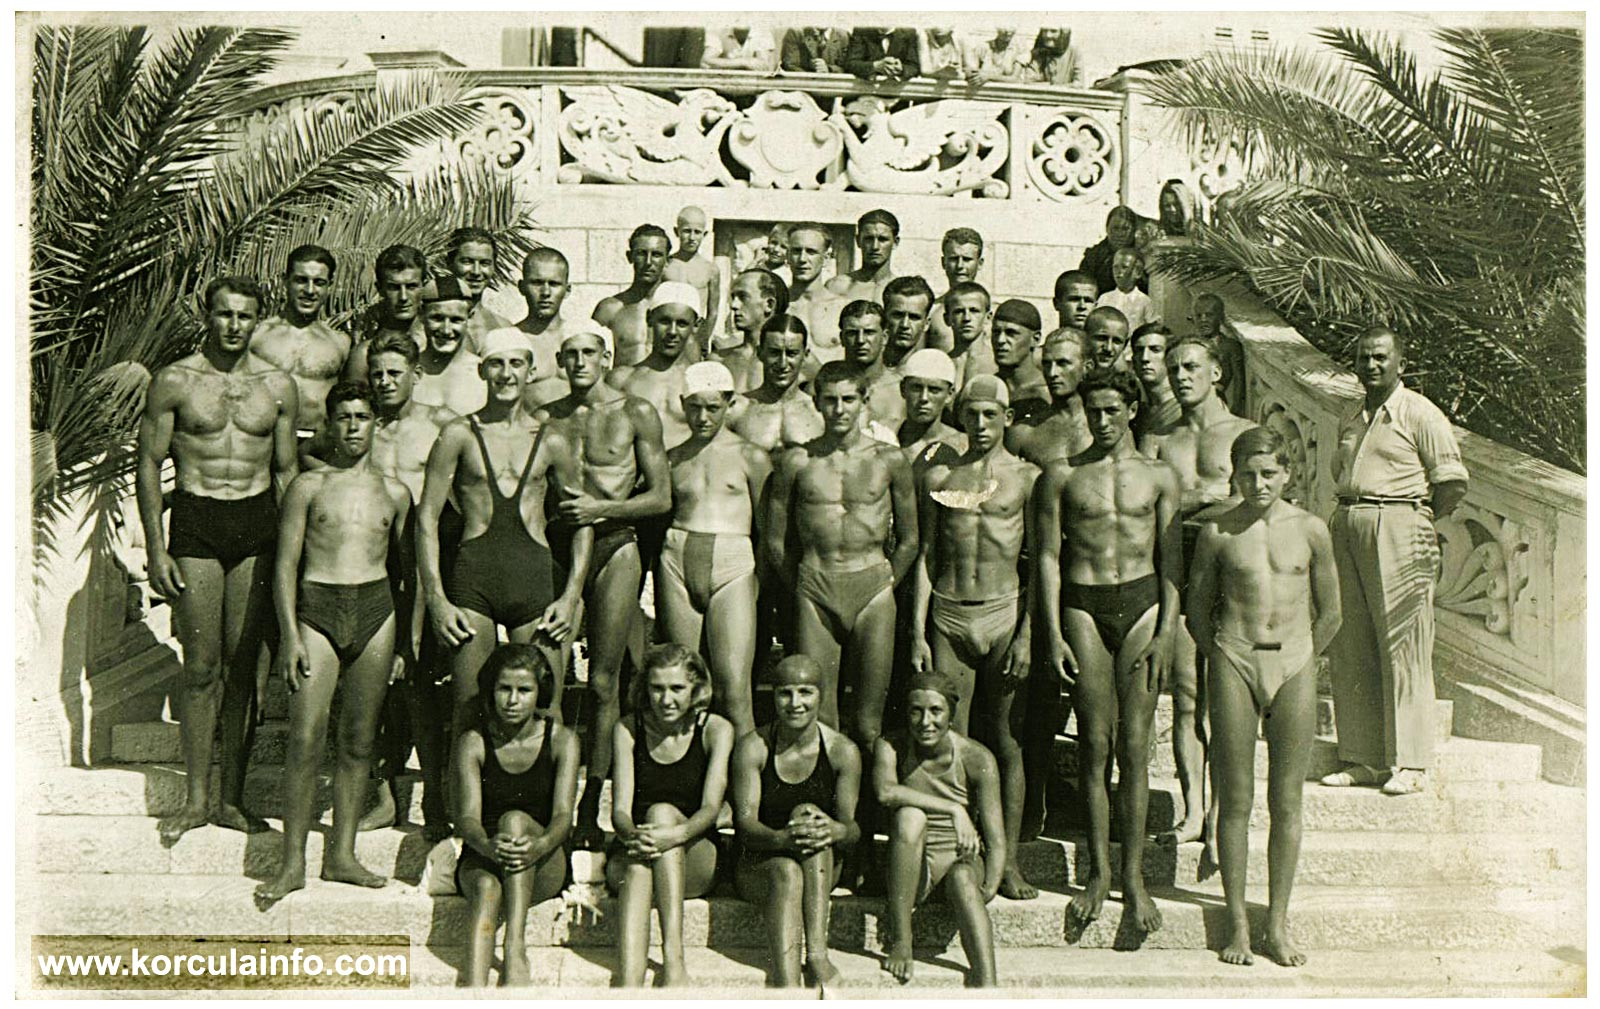 Members of KPK swimming and water polo club (Korcula 1935)